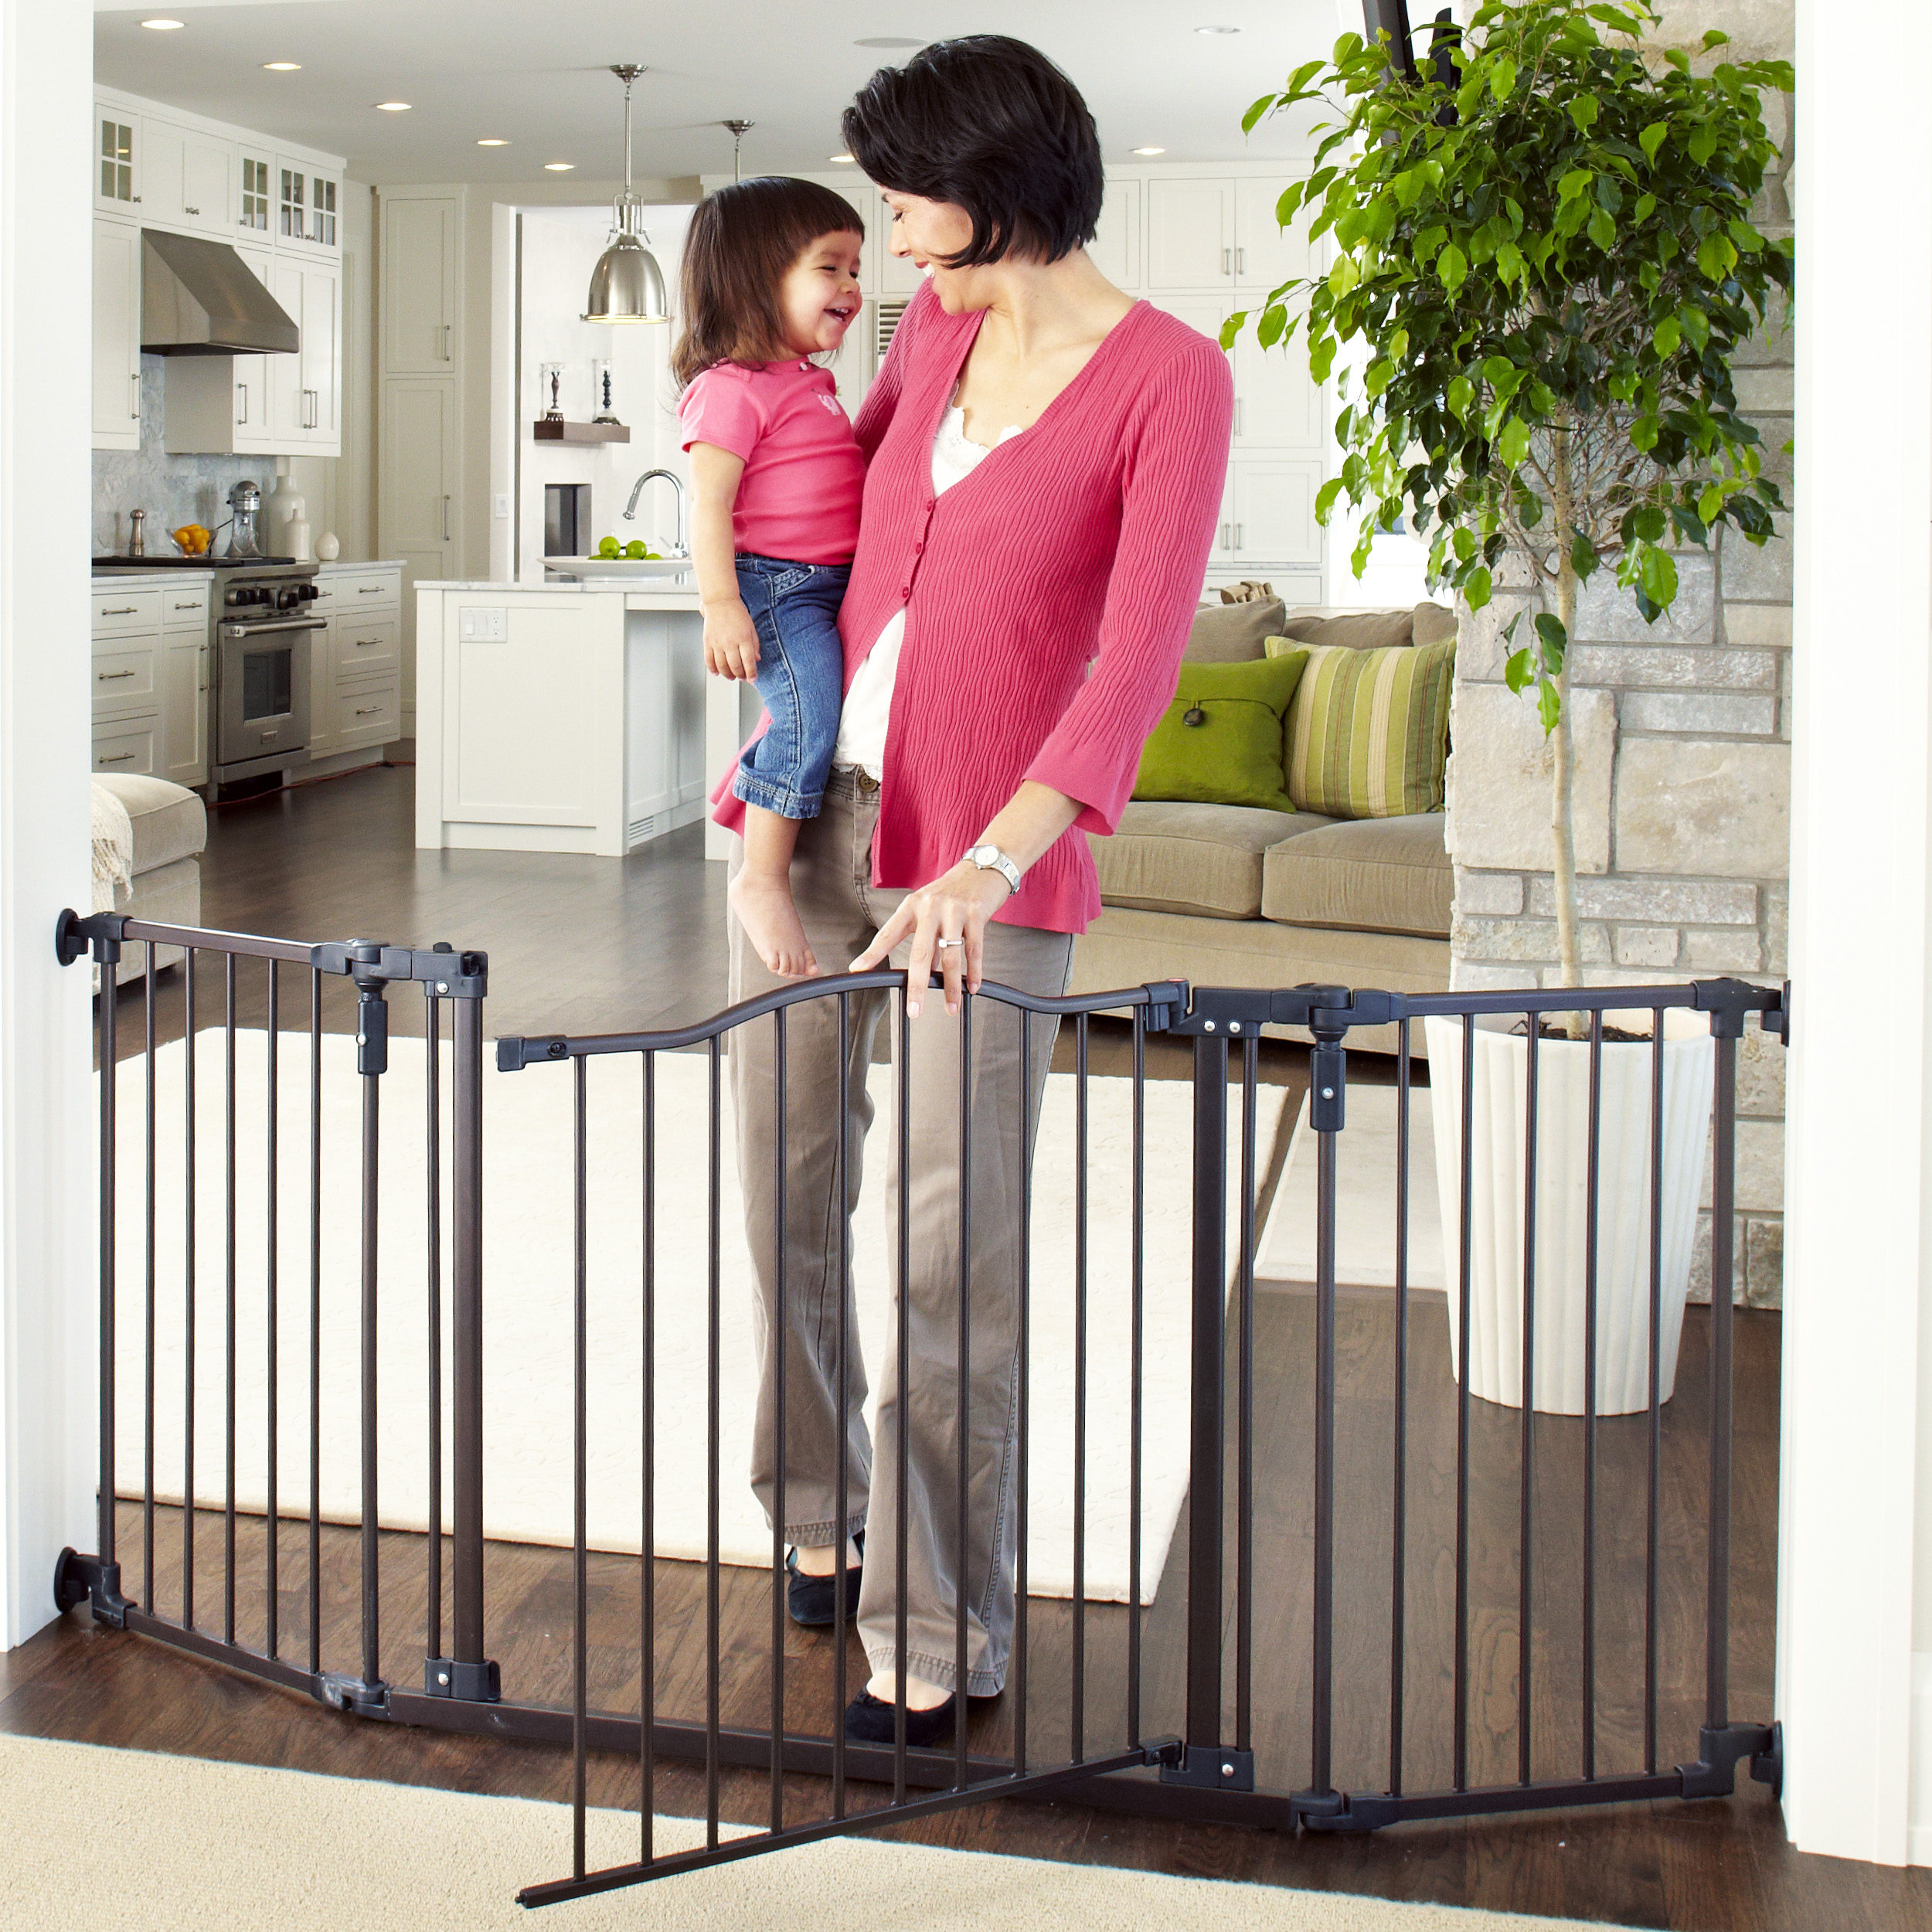 Extra Large Supergate Pet Child Dog Gate Safety Extra Wide Swing Baby Child Walk